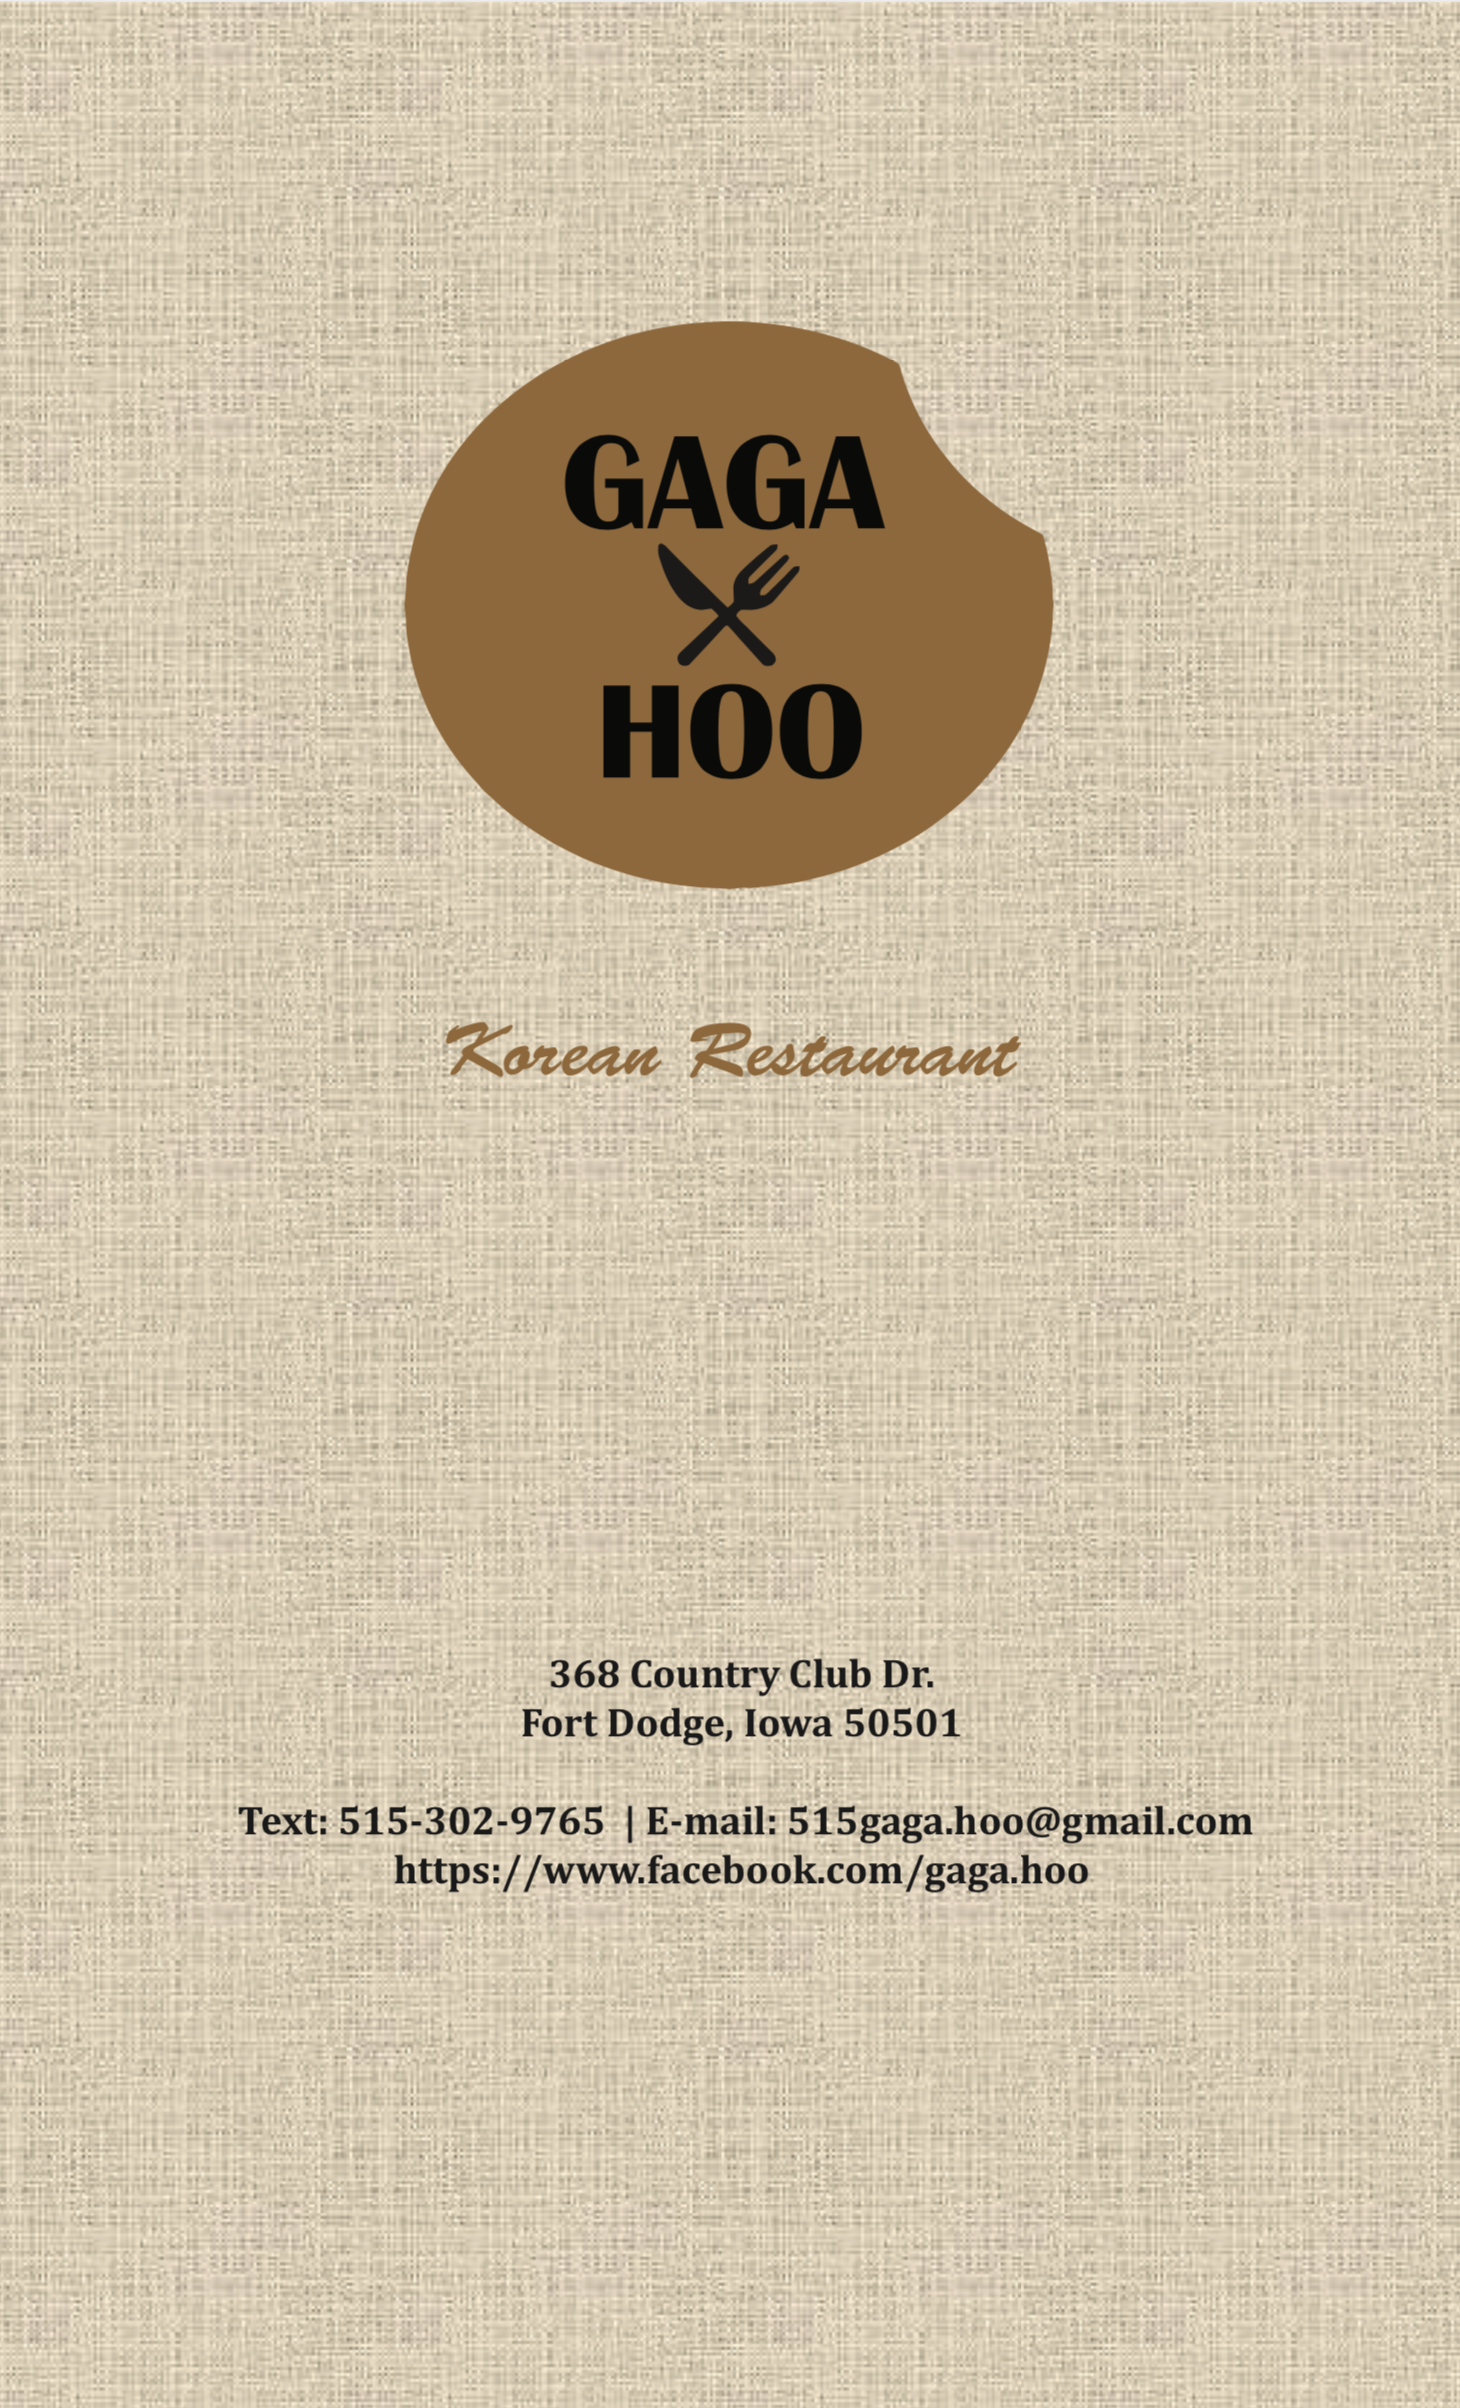 Thumbnail Image For Gaga & Hoo Korean Restuarant - Click Here To See